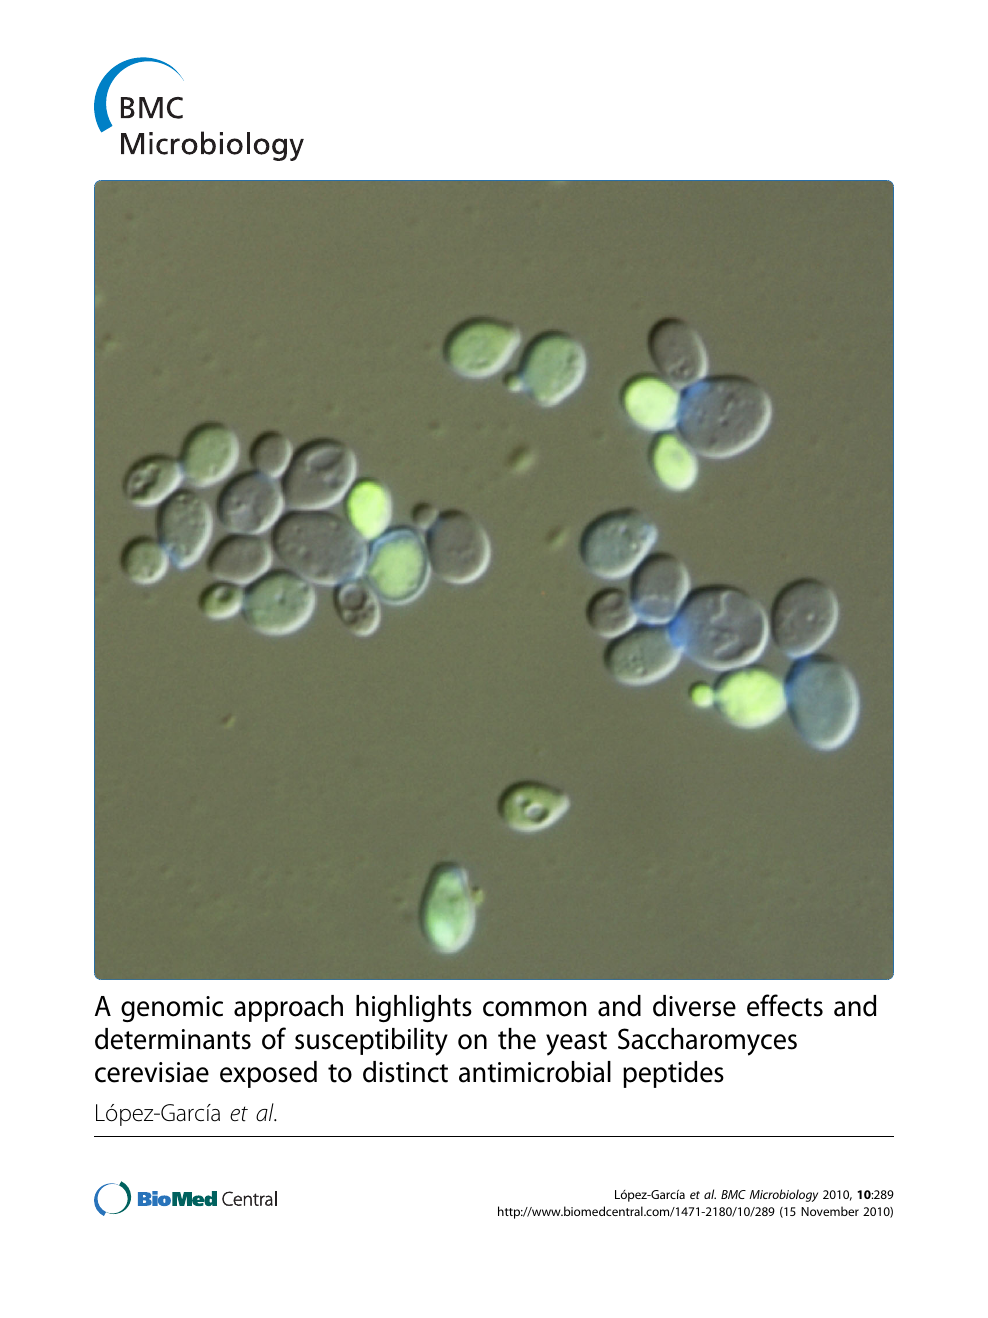 A genomic approach highlights common and diverse effects and